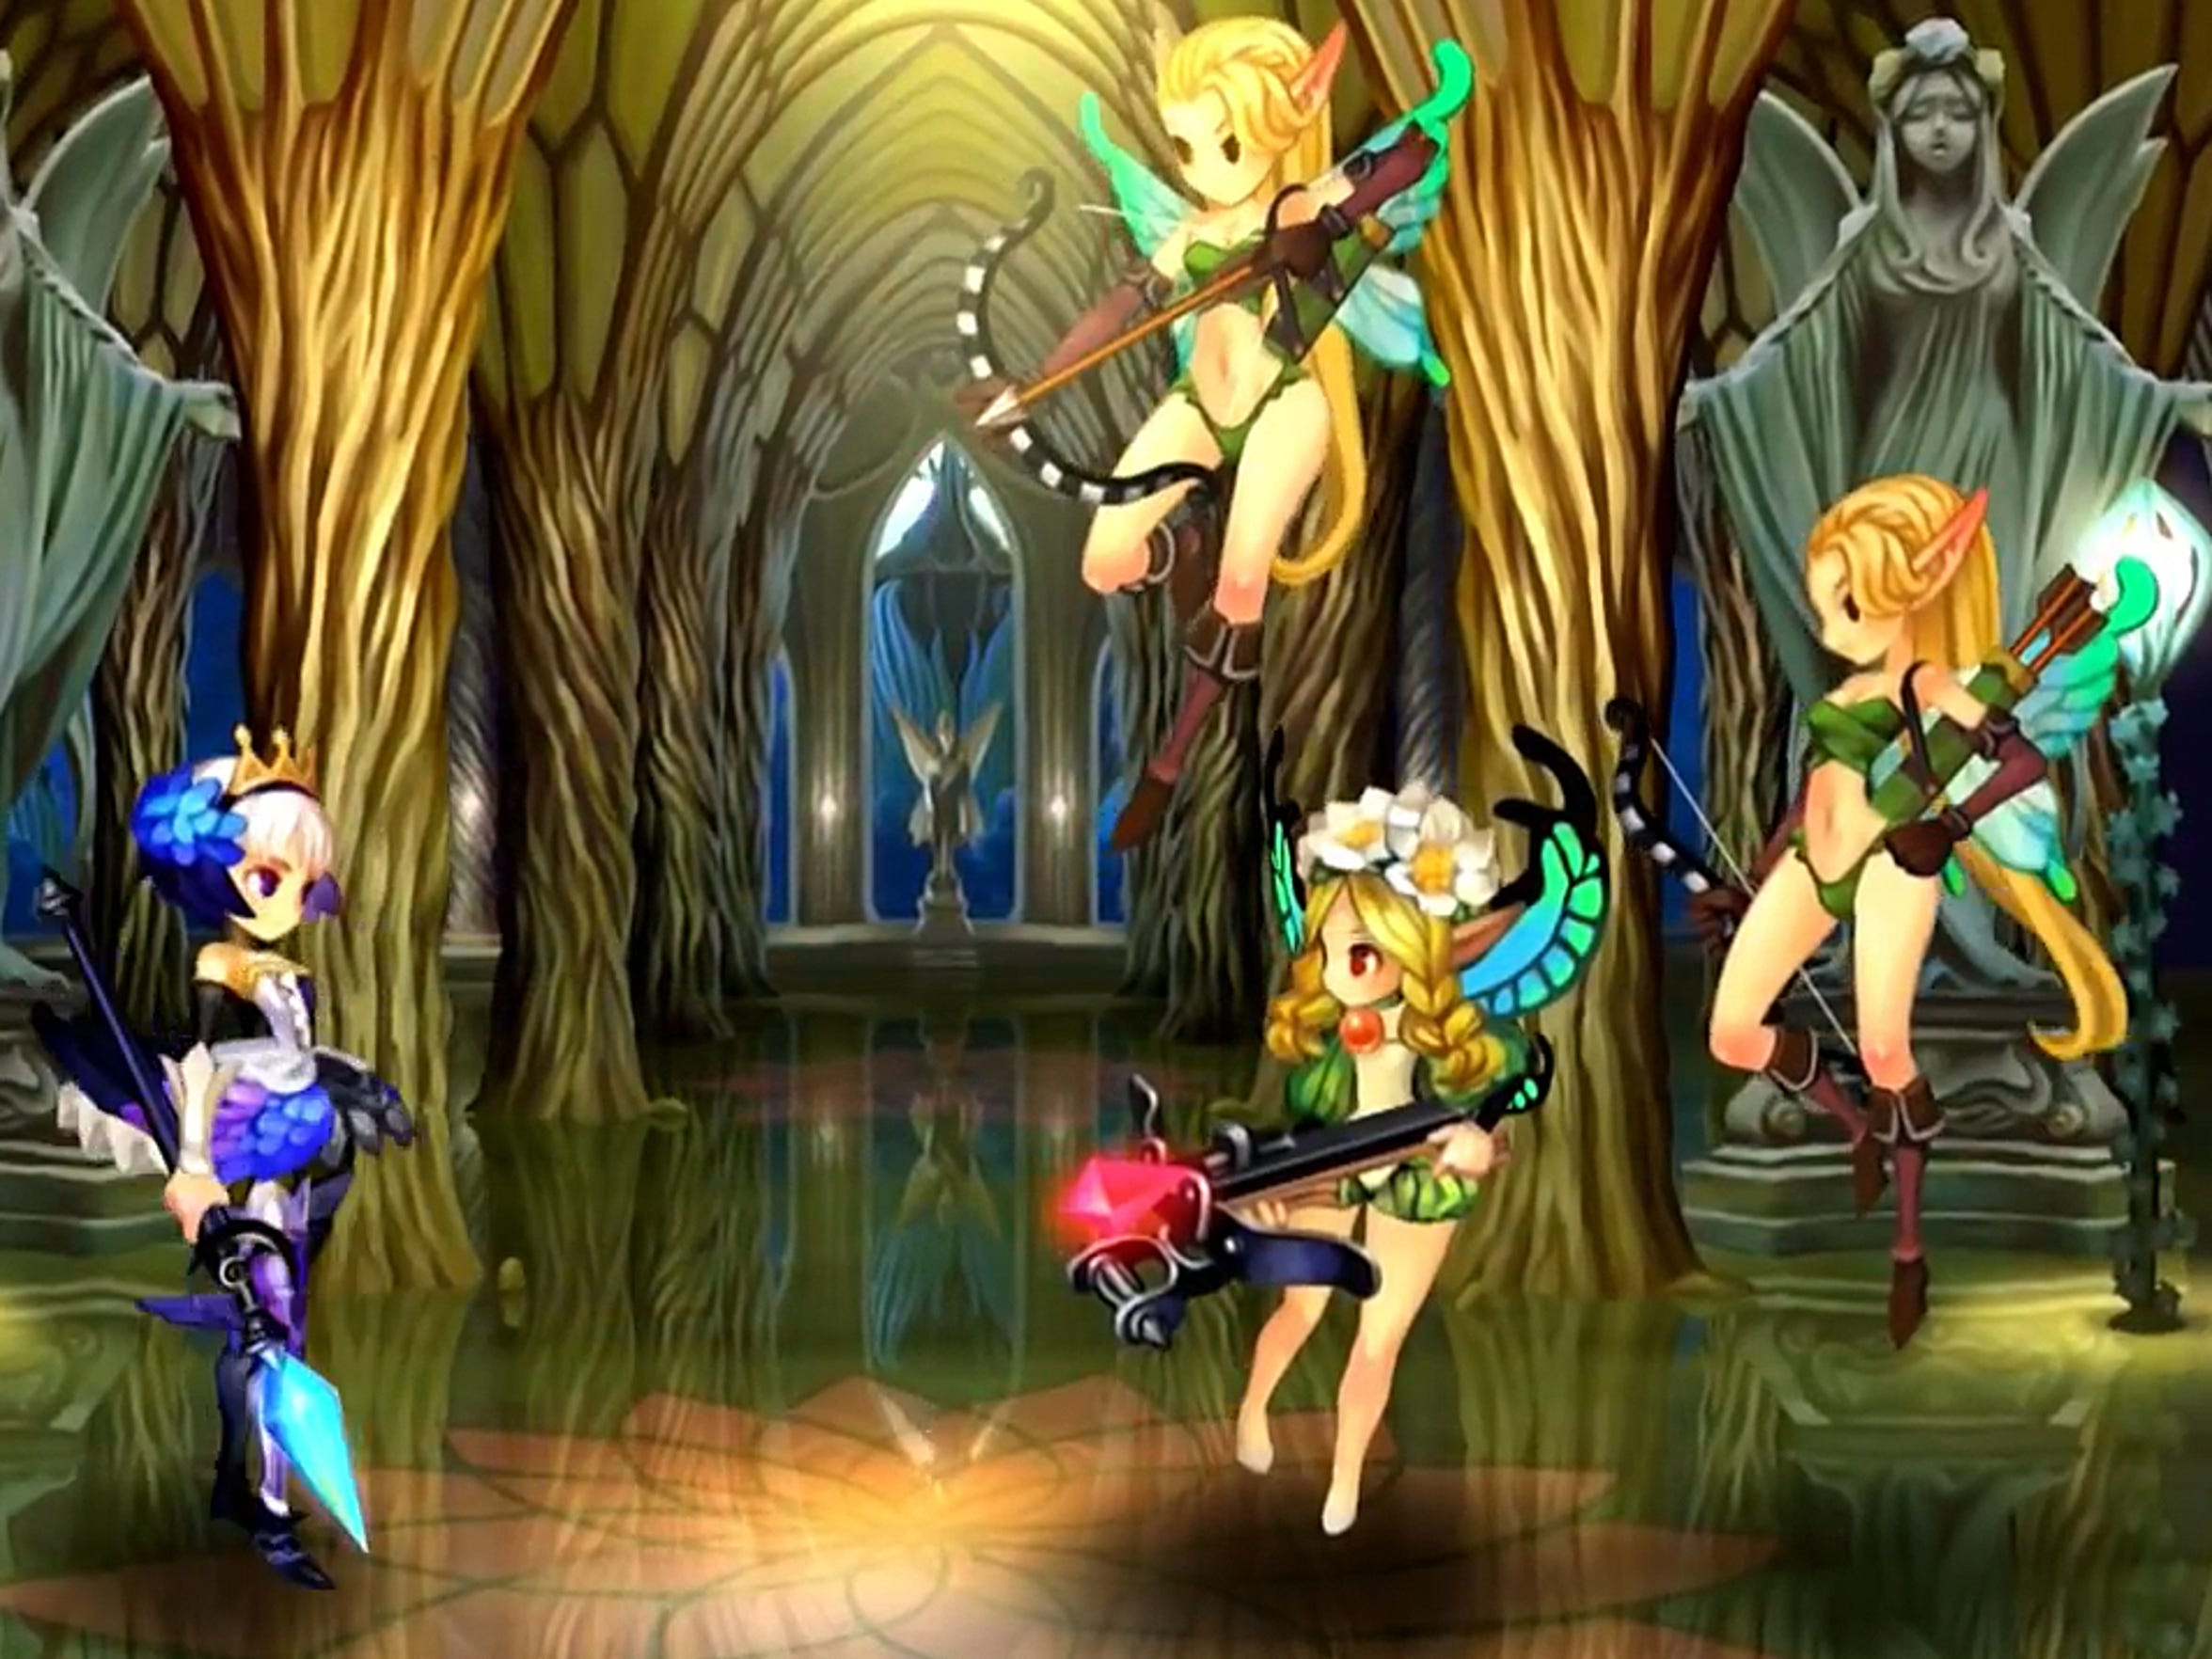 Odin Sphere Leifthrasir features gorgeous redrawn graphics.